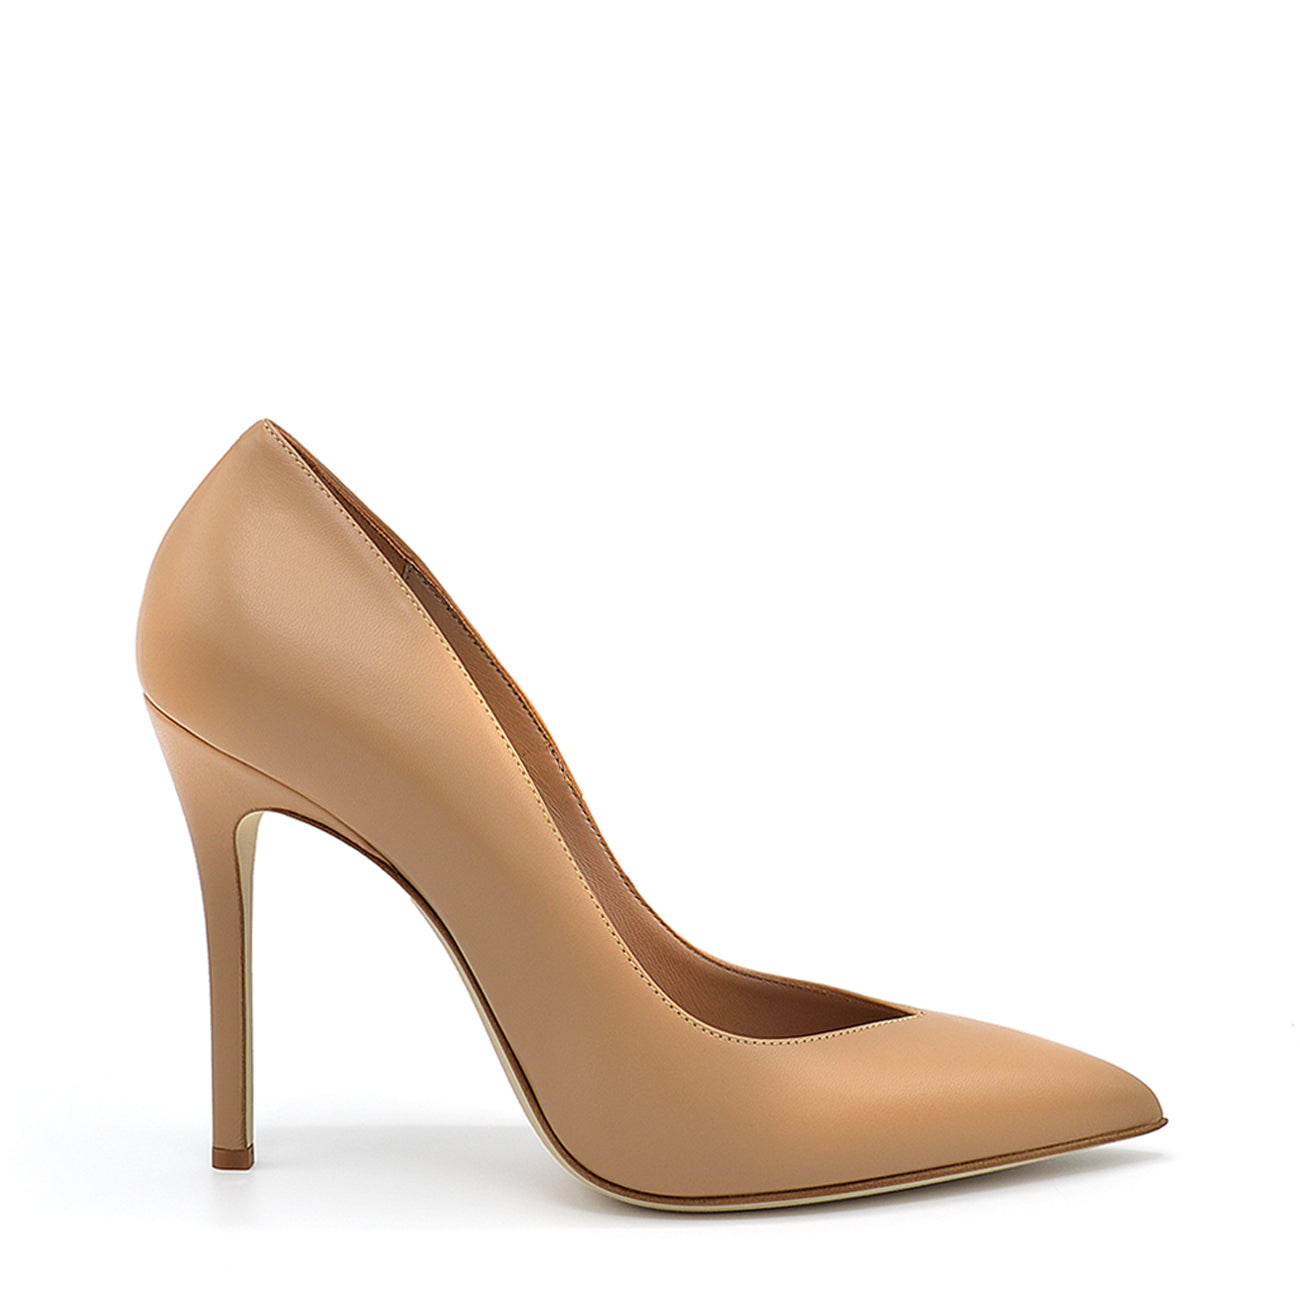 Lexy. <br> Croissant beige nappa leather pumps